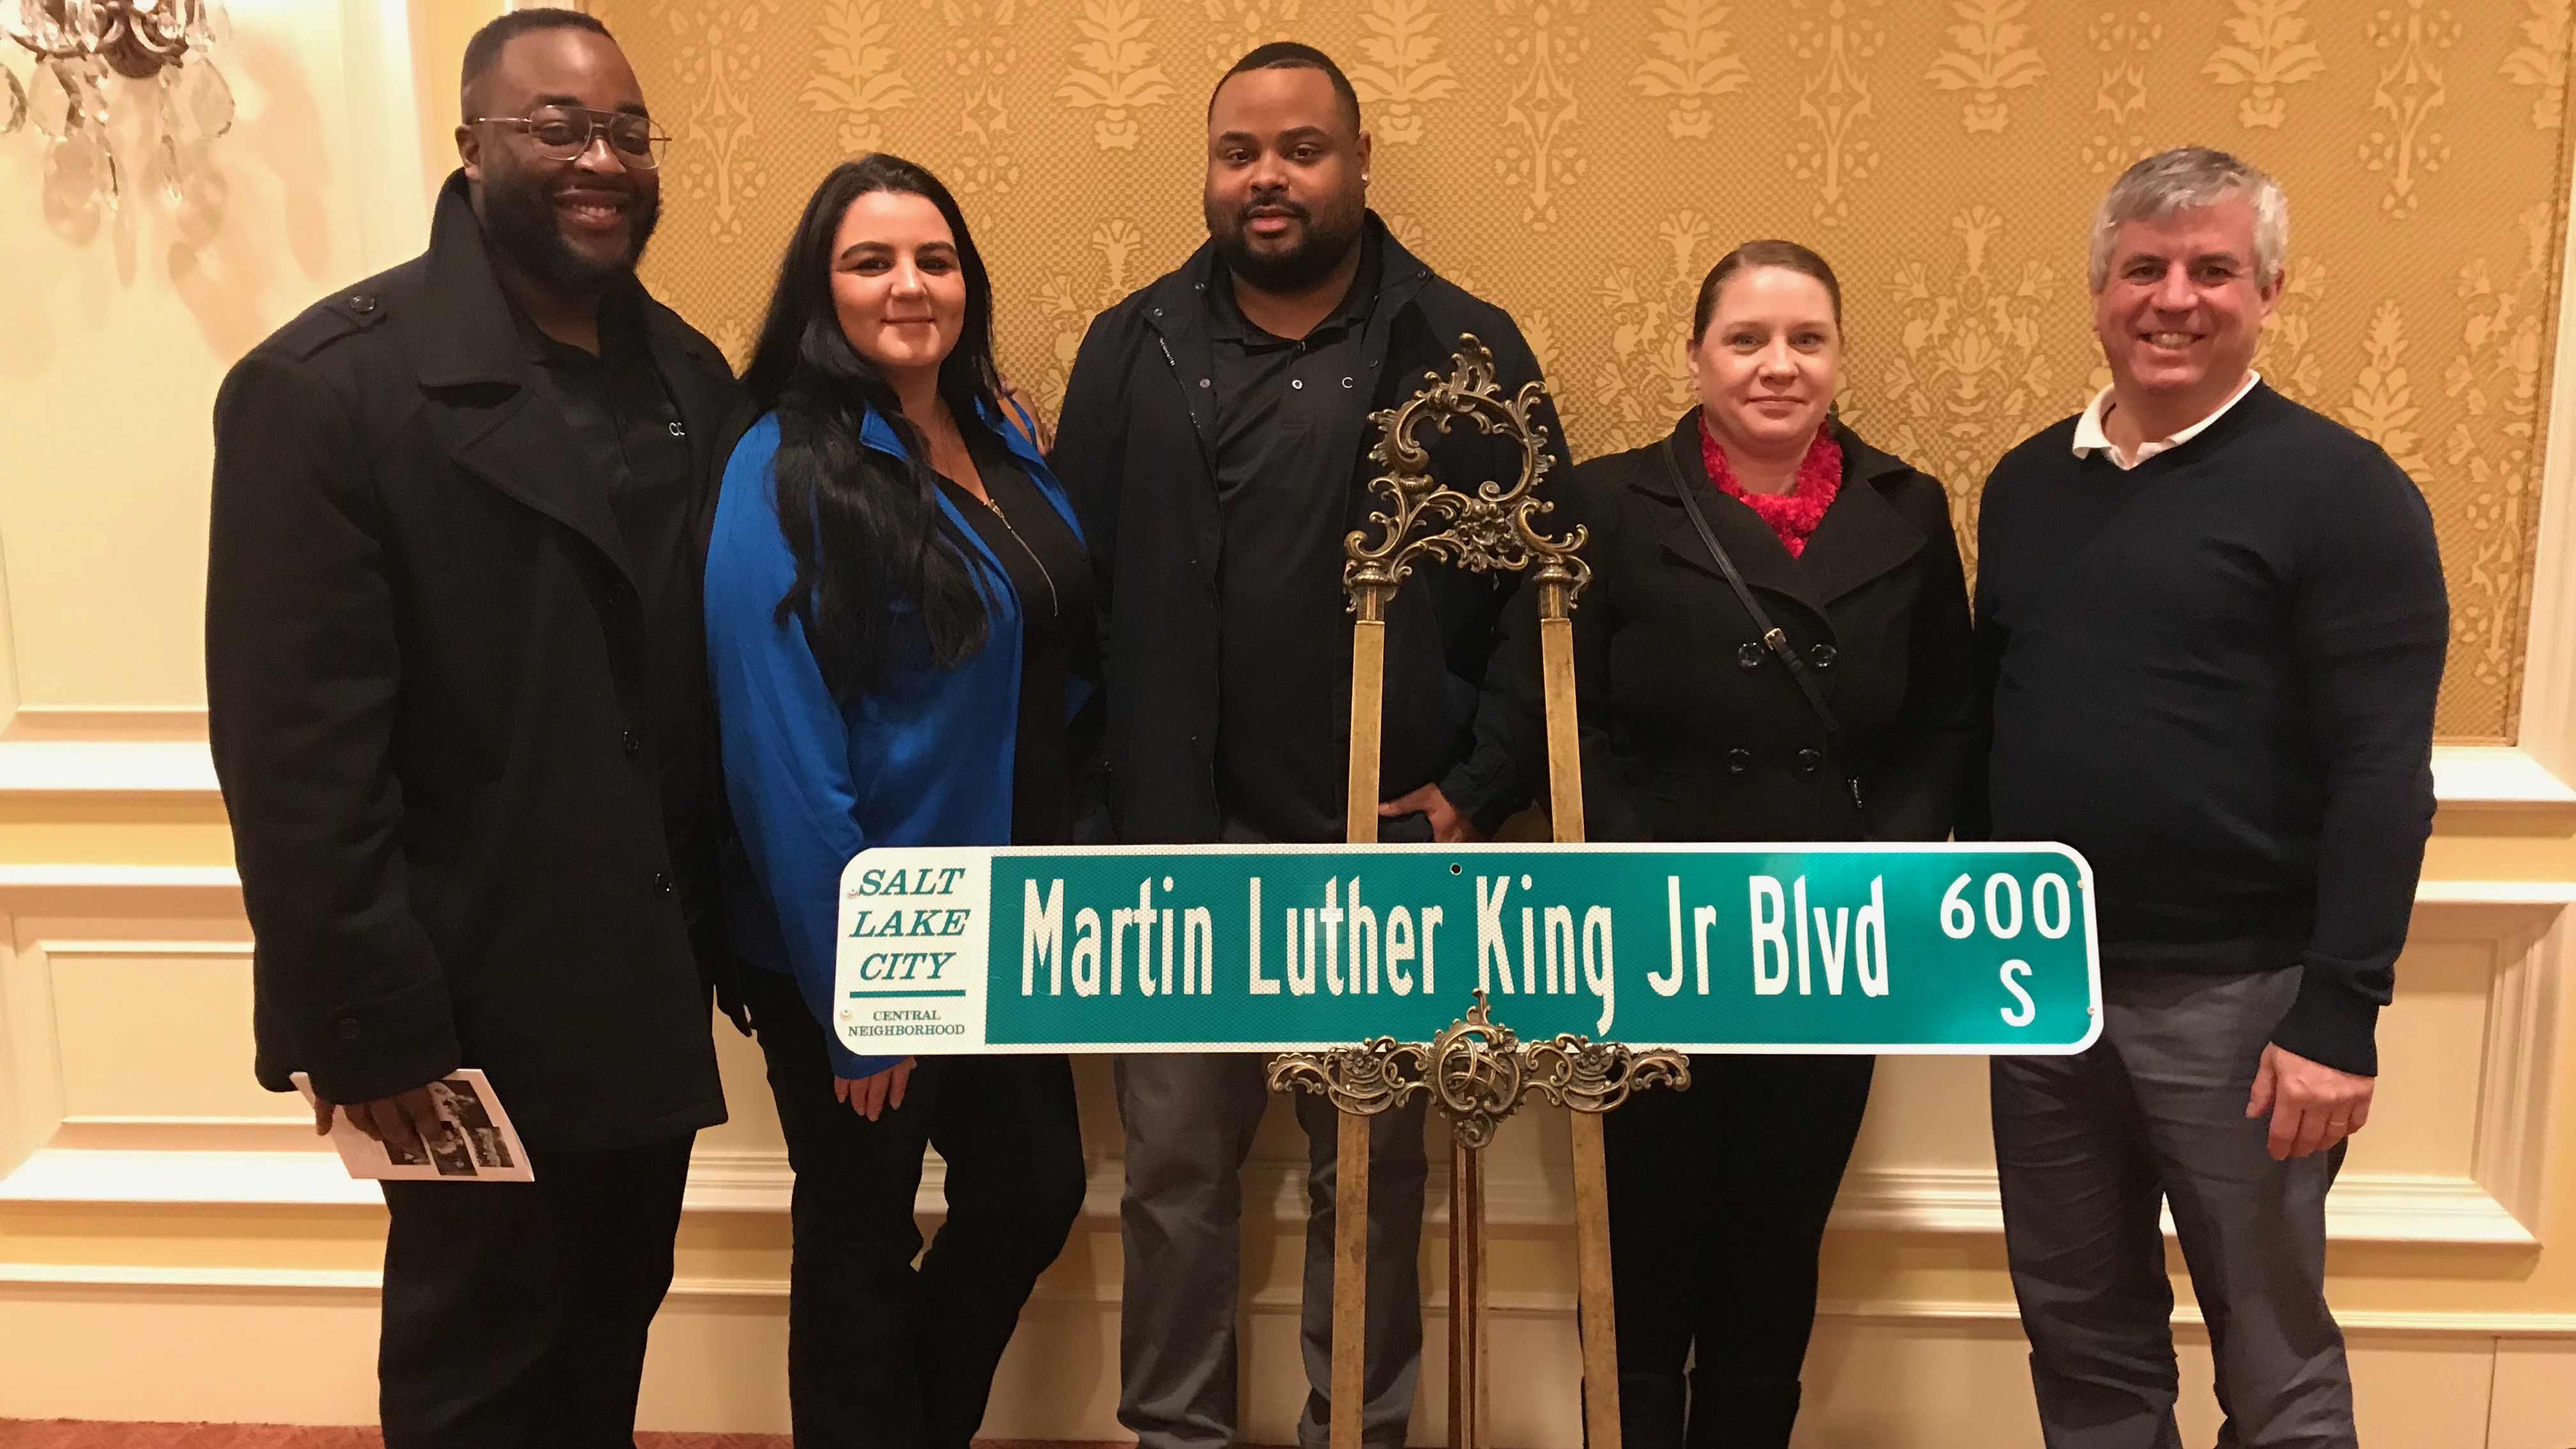 Members of the Comcast Black Employee Network stand in front of a Martin Luther King Jr. street sign.